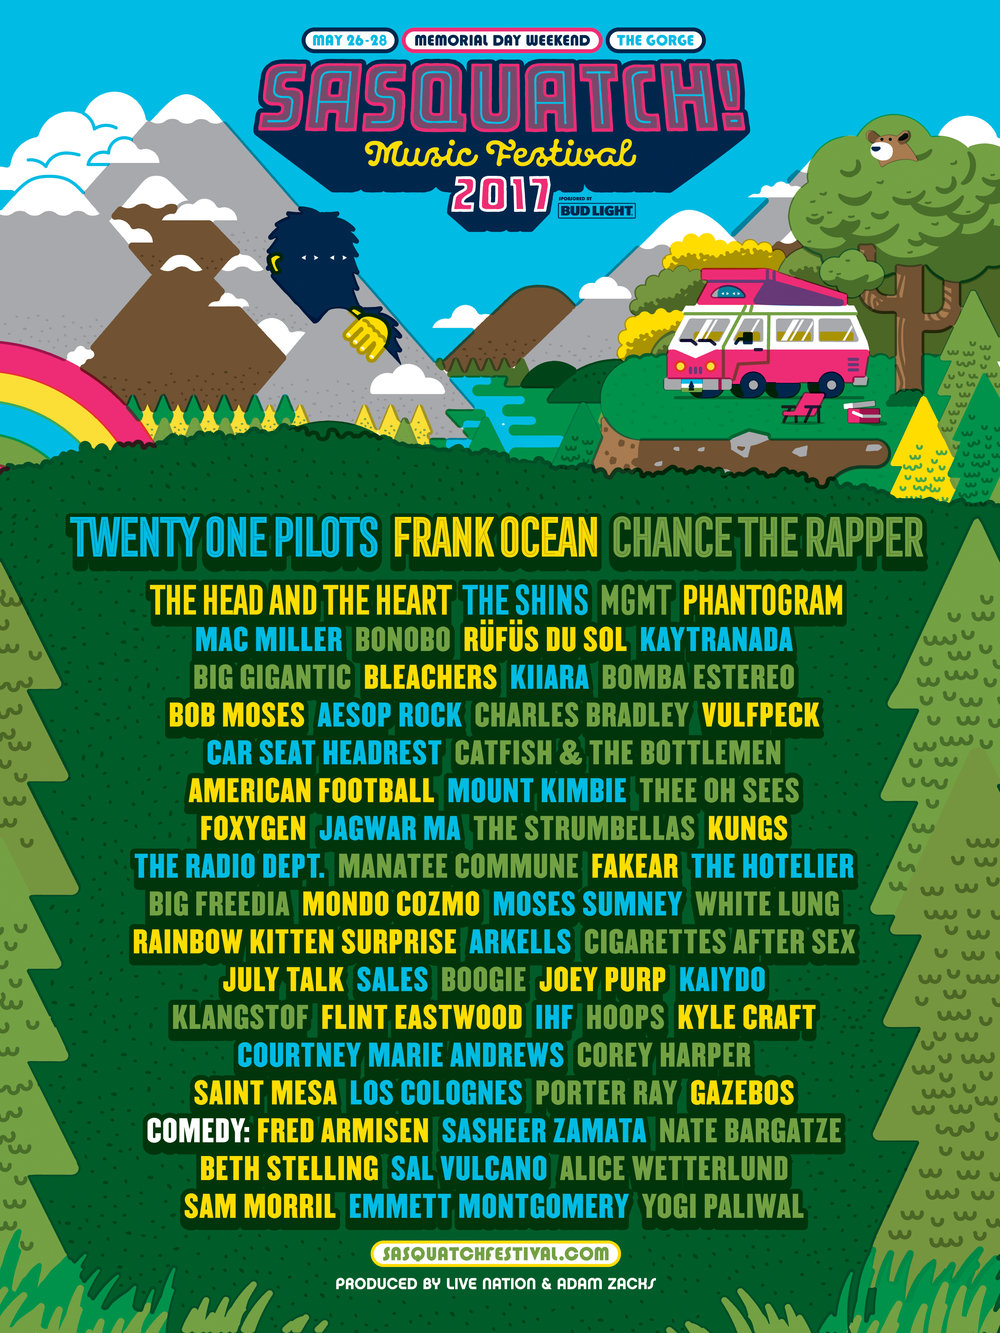 MGMT will be performing at the Sasquatch Music Festival, May 26-28. For tickets and more details go to: https://www.sasquatchfestival.com